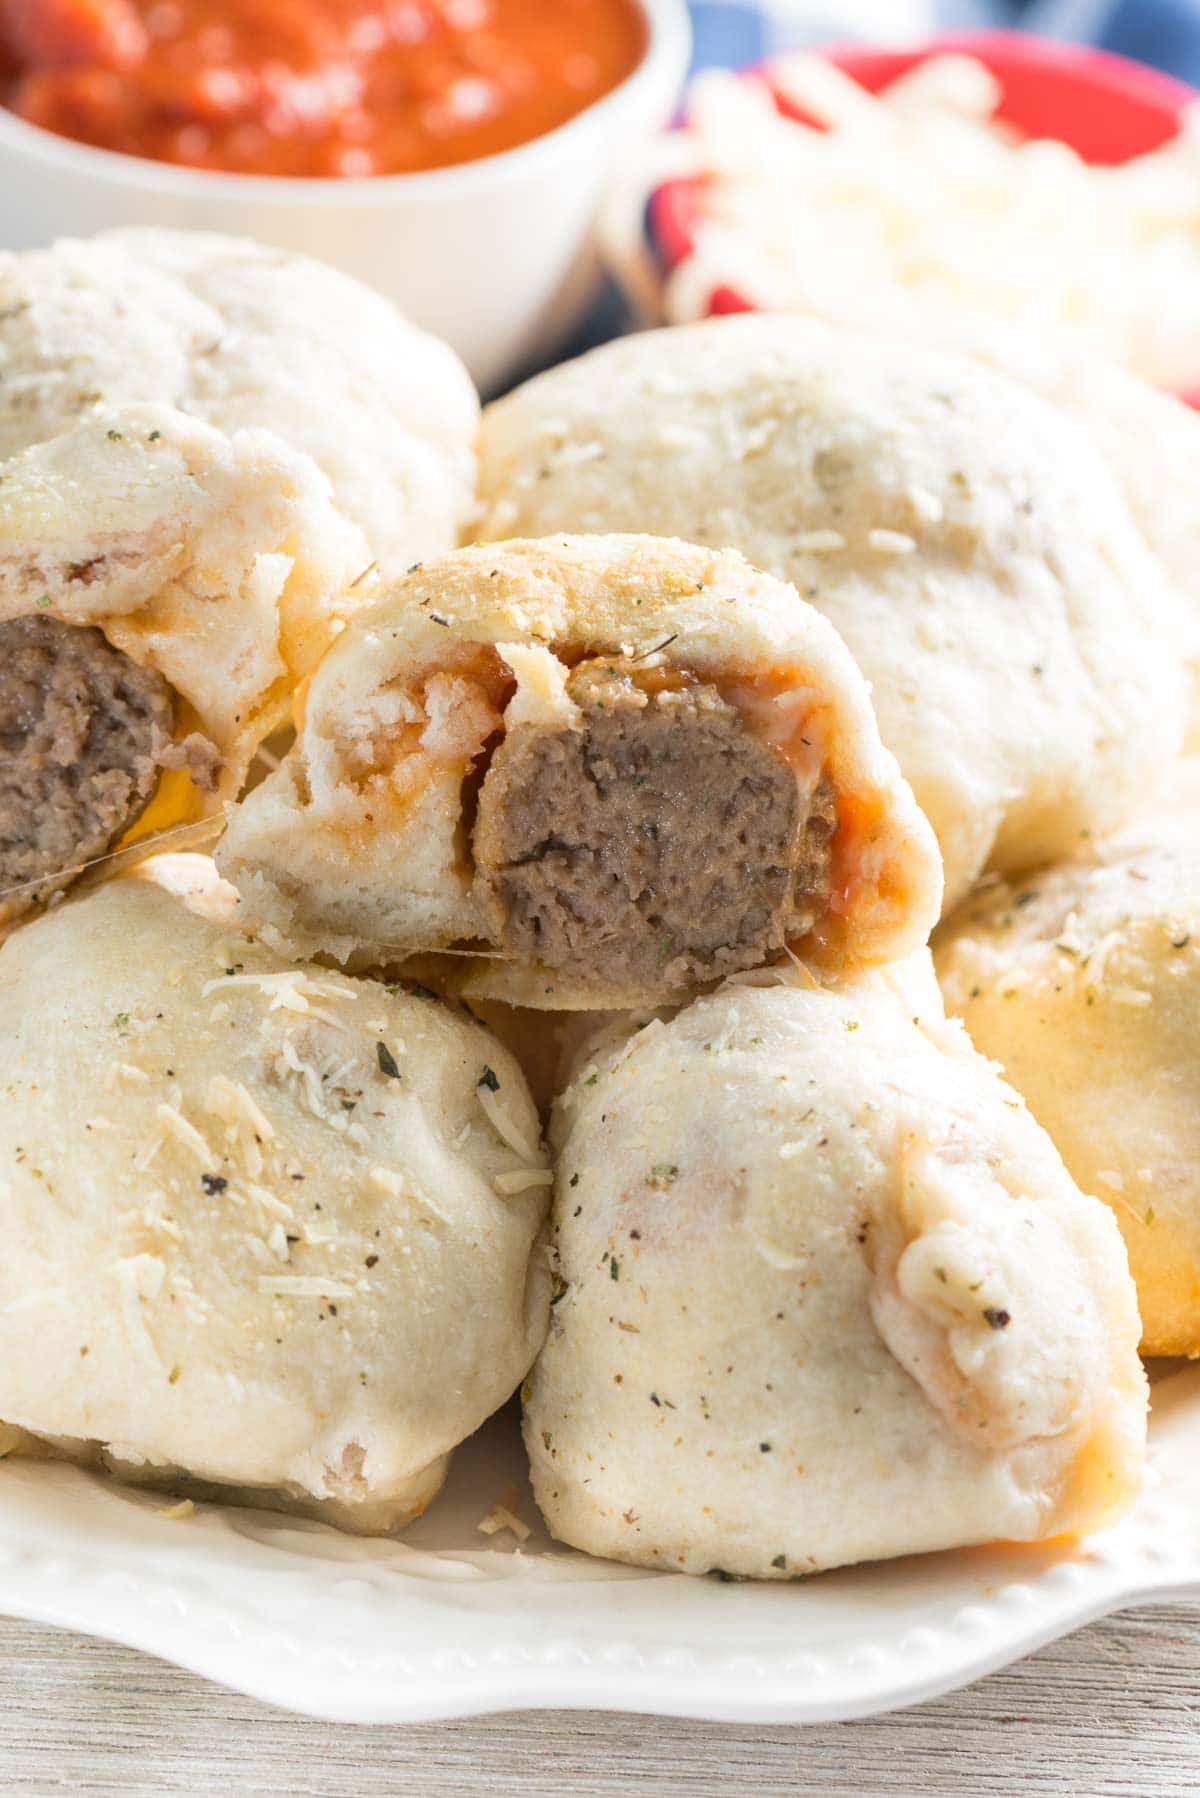 Meatball Sub Bites - this easy appetizer recipe has just 4 main ingredients and is perfect for a party or lunch. Wrap frozen meatballs in biscuit dough for a handheld meatball sub in a bite!